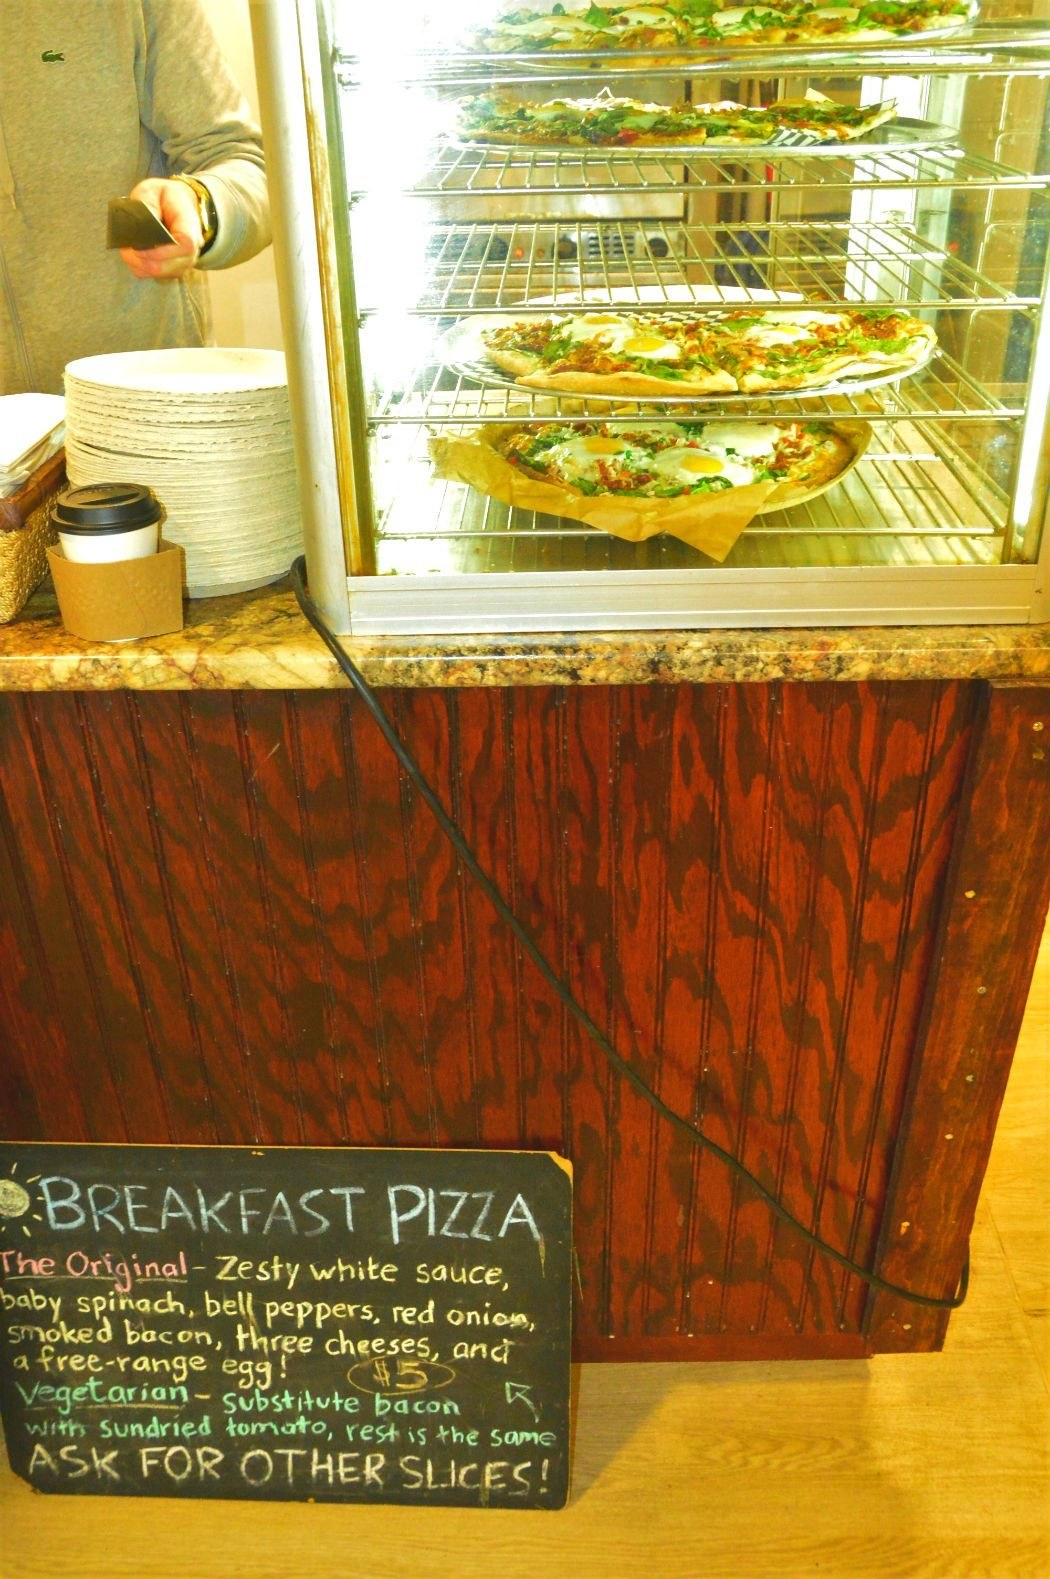 breakfast pizza sign and on display